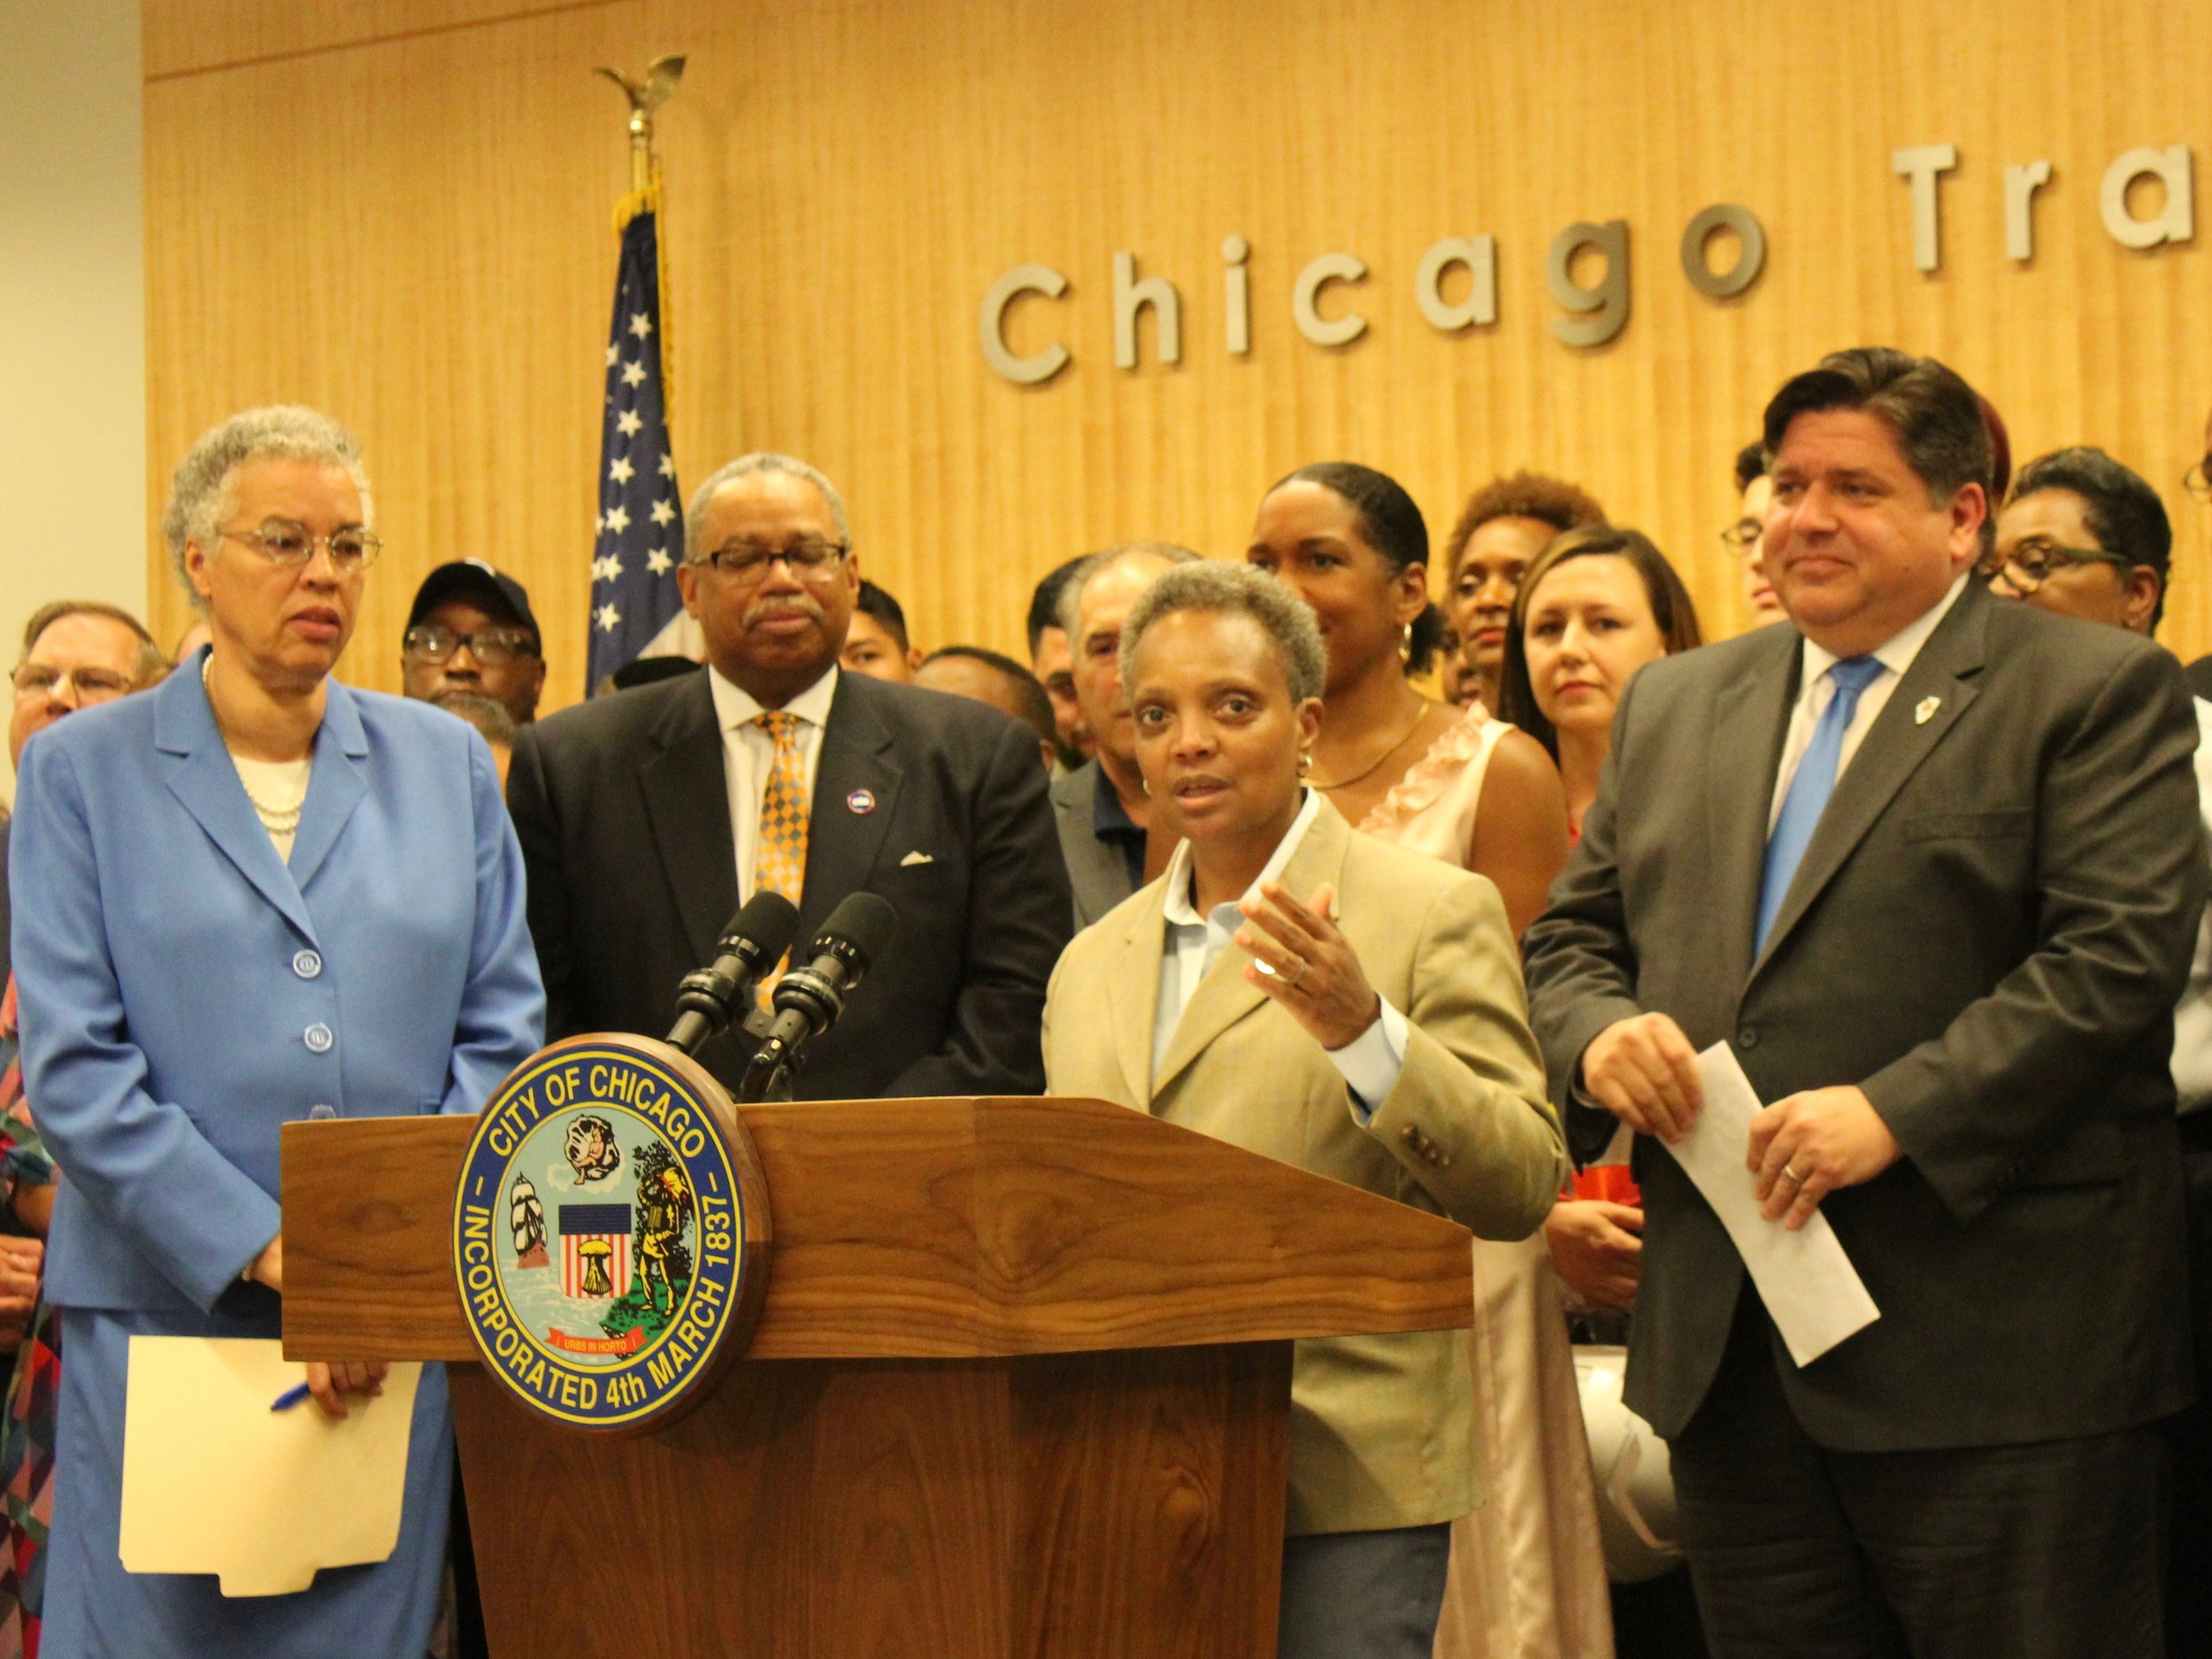 With Cook County Board President Toni Preckwinkle and CTA President Dorval Carter looking on, Chicago Mayor Lori Lightfoot and Gov. J.B. Pritzker discuss how the Rebuild Illinois capital plan will improve mass transit. (One Illinois/Ted Cox)